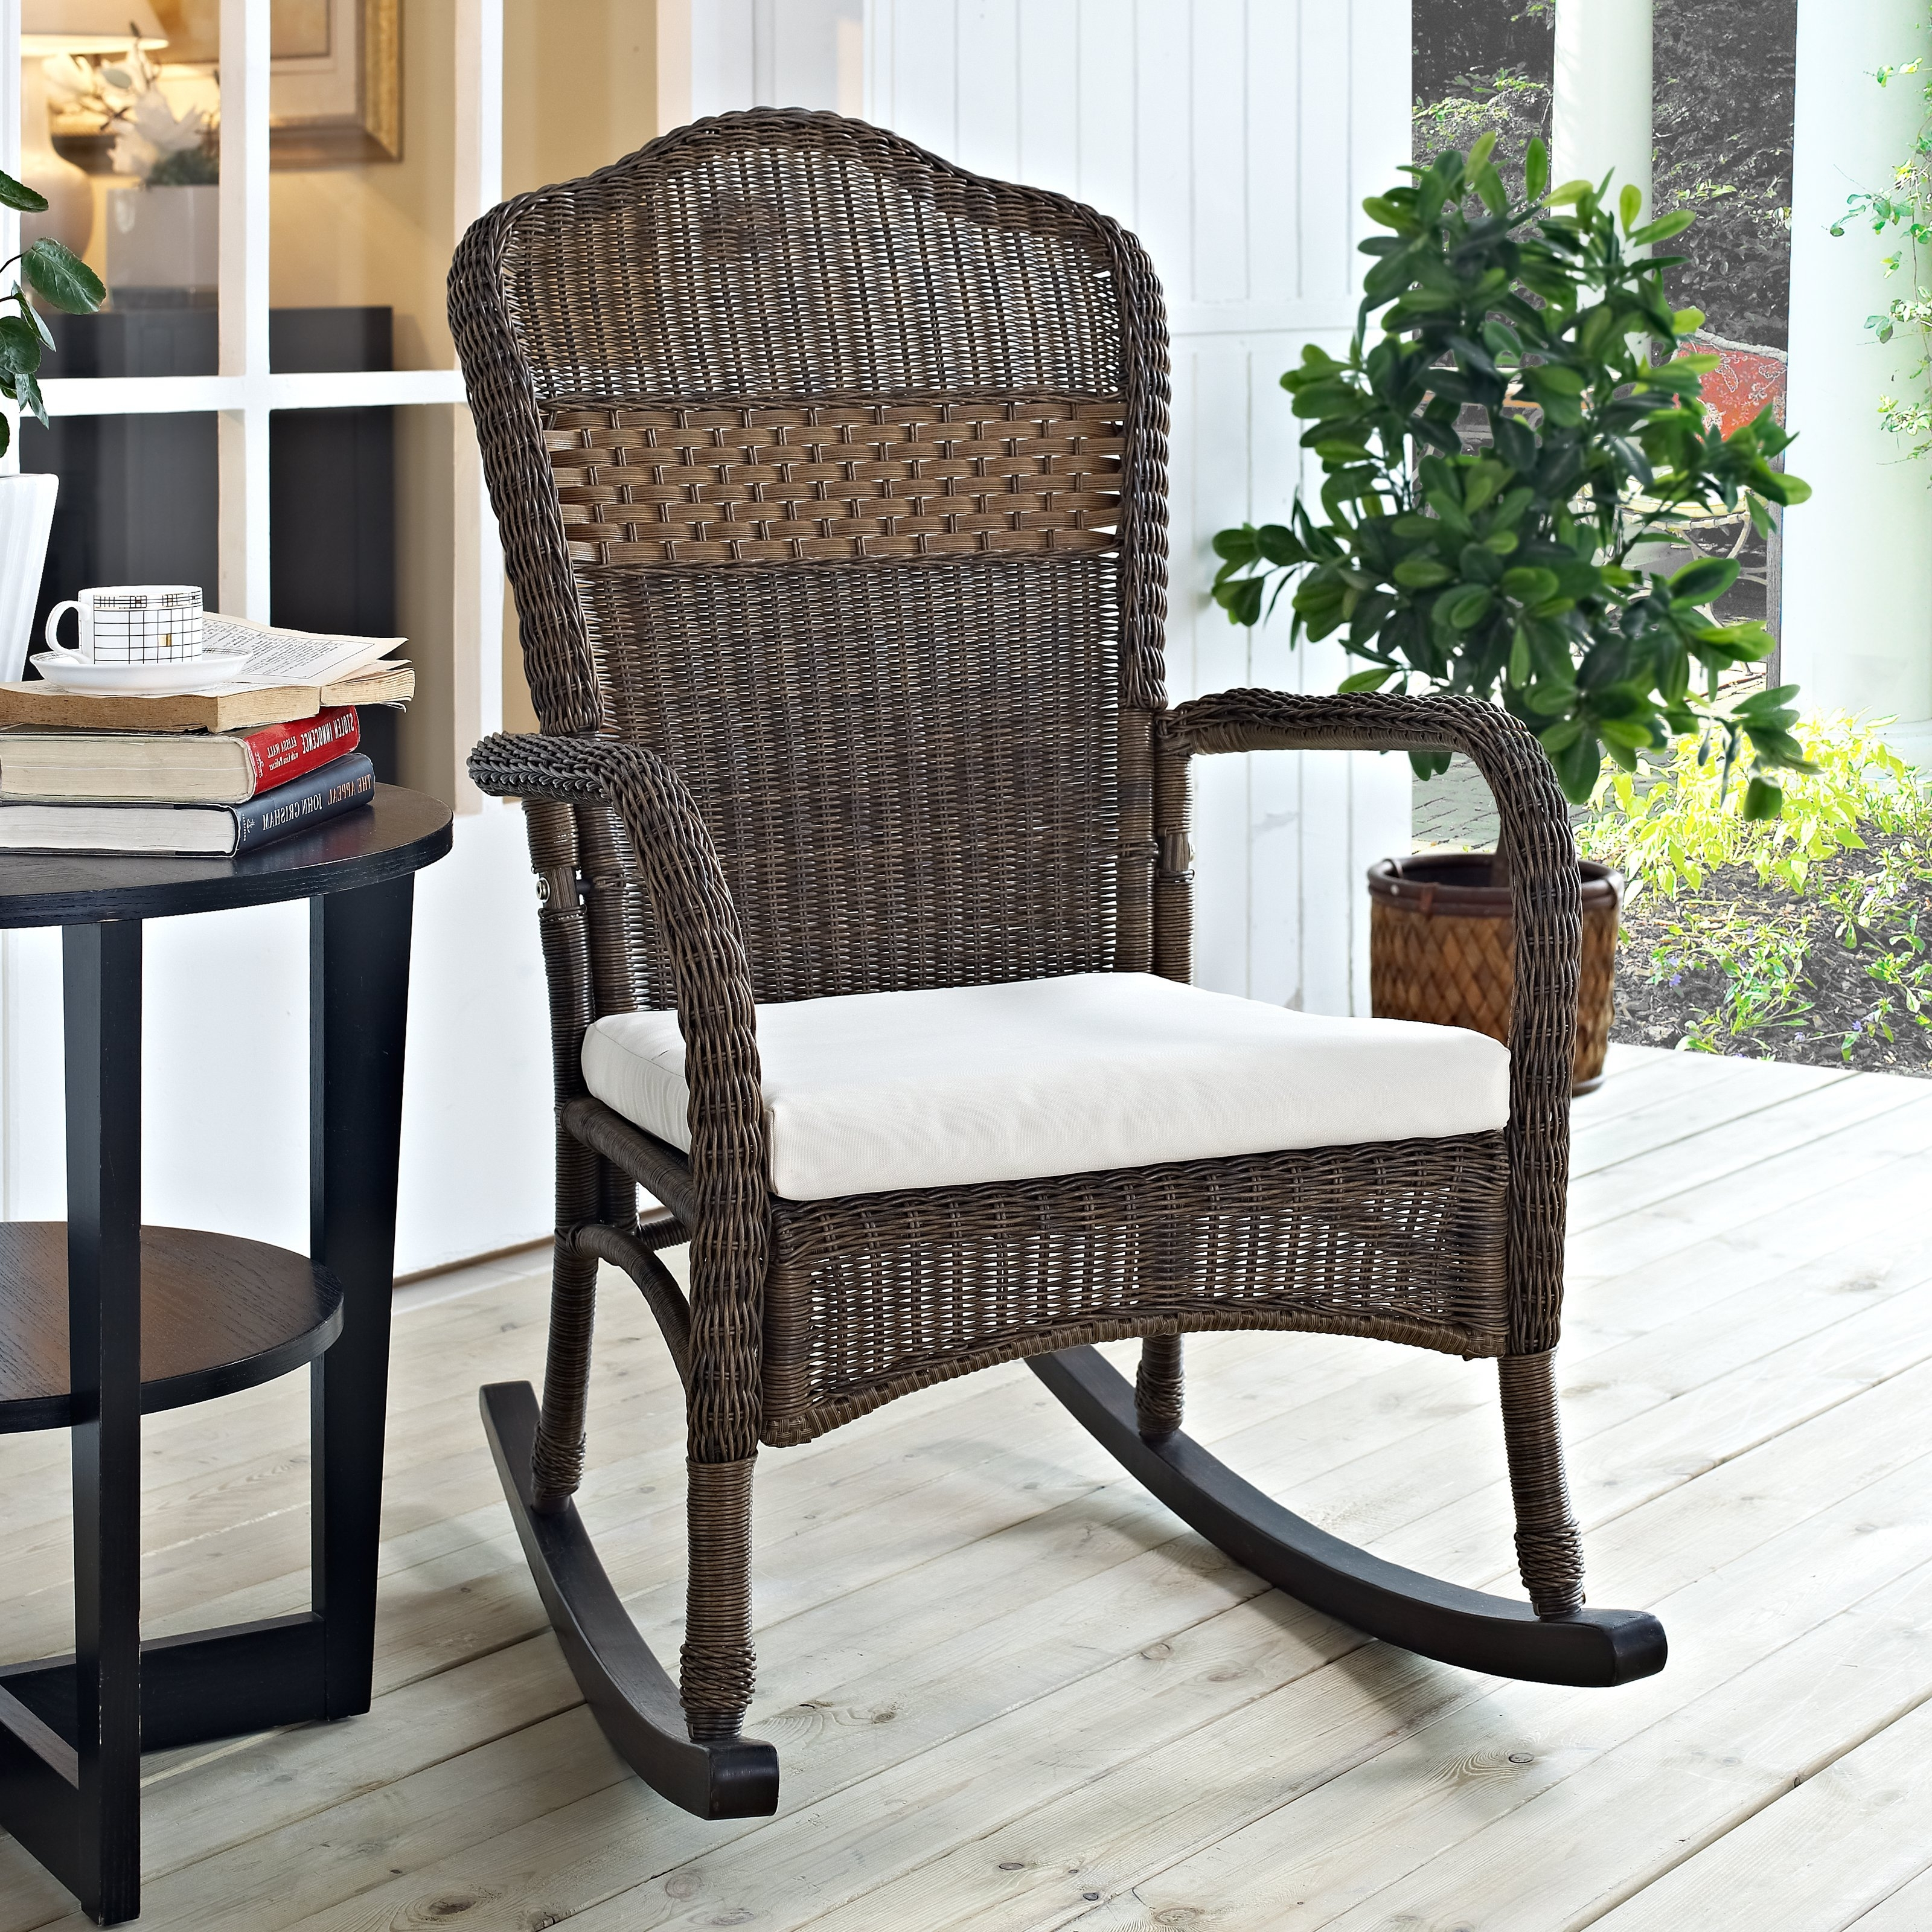 Outdoor Wicker Rocking Chairs In Well Liked Coral Coast Mocha Resin Wicker Rocking Chair With Beige Cushion (View 3 of 20)